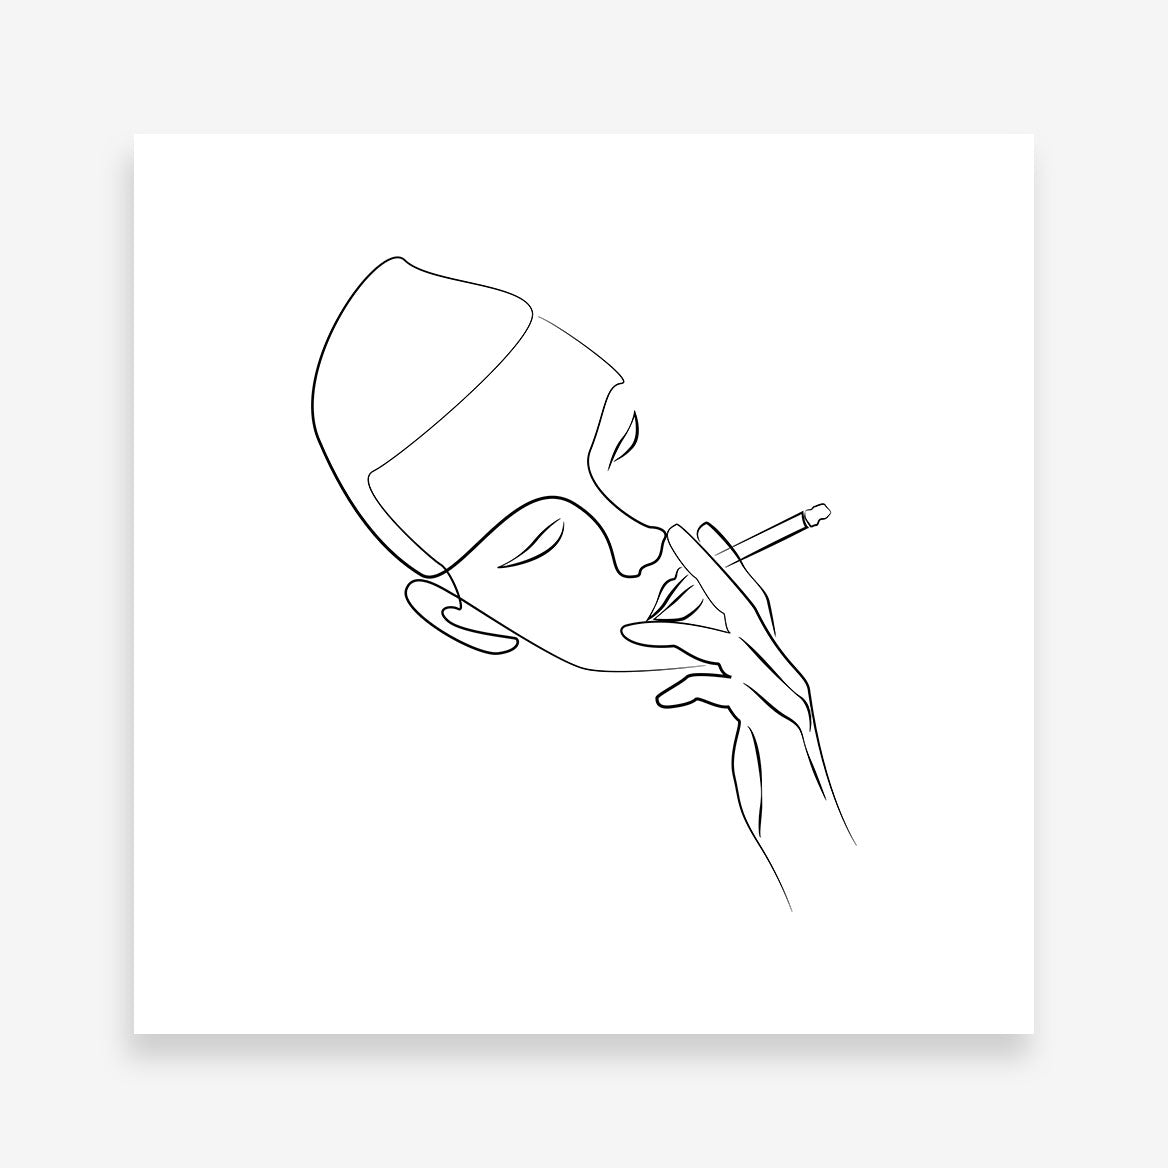 Line art poster print with a cigarette smoking man.